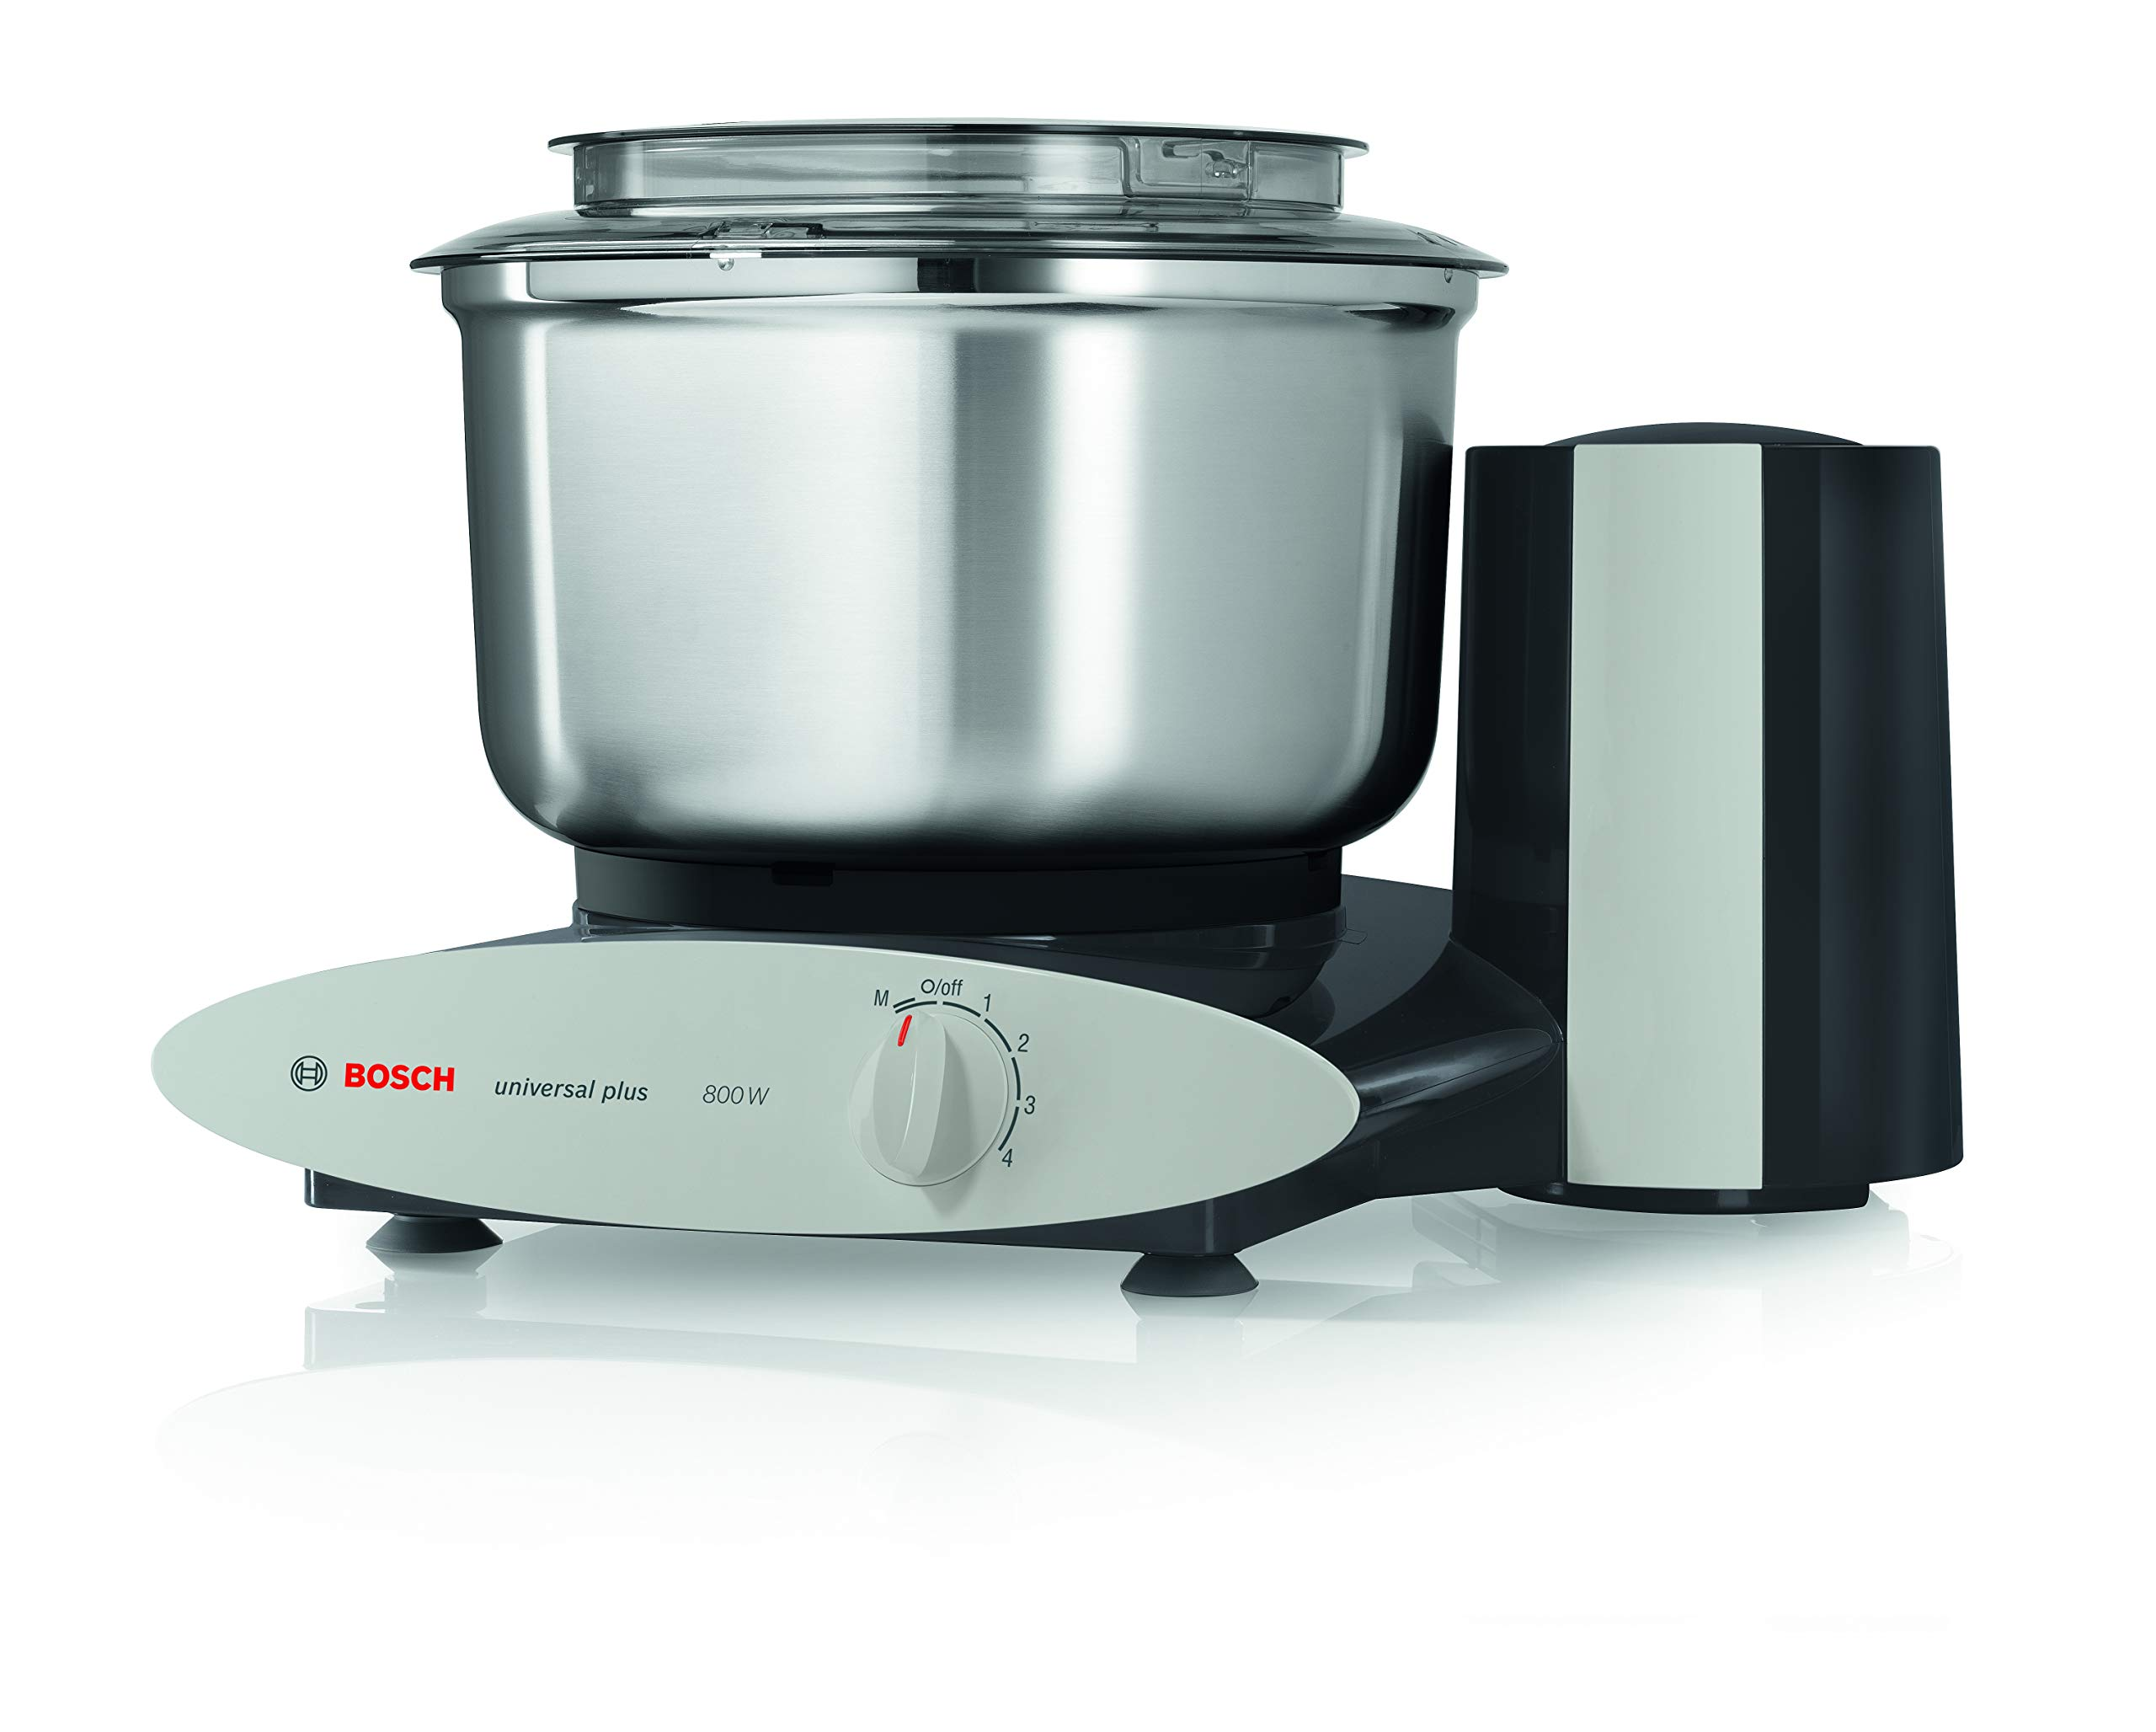 Bosch Universal Plus Stand Mixer - Black 800 Watt by Bosch